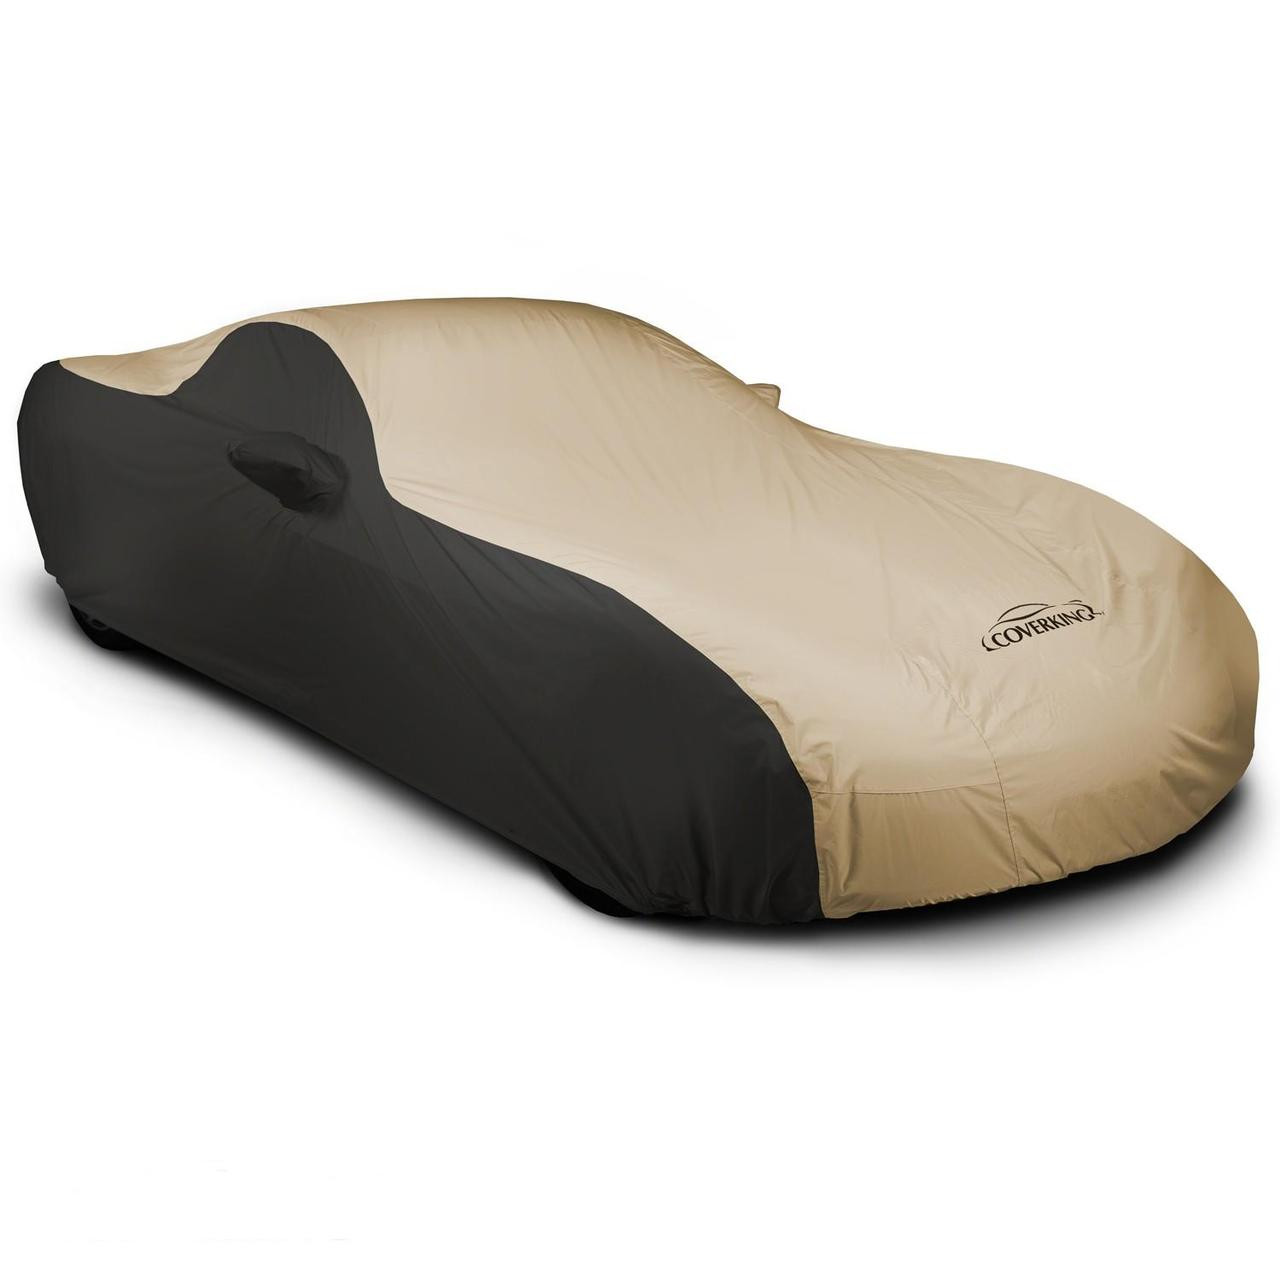 Corvette Outdoor Car Cover black/tan